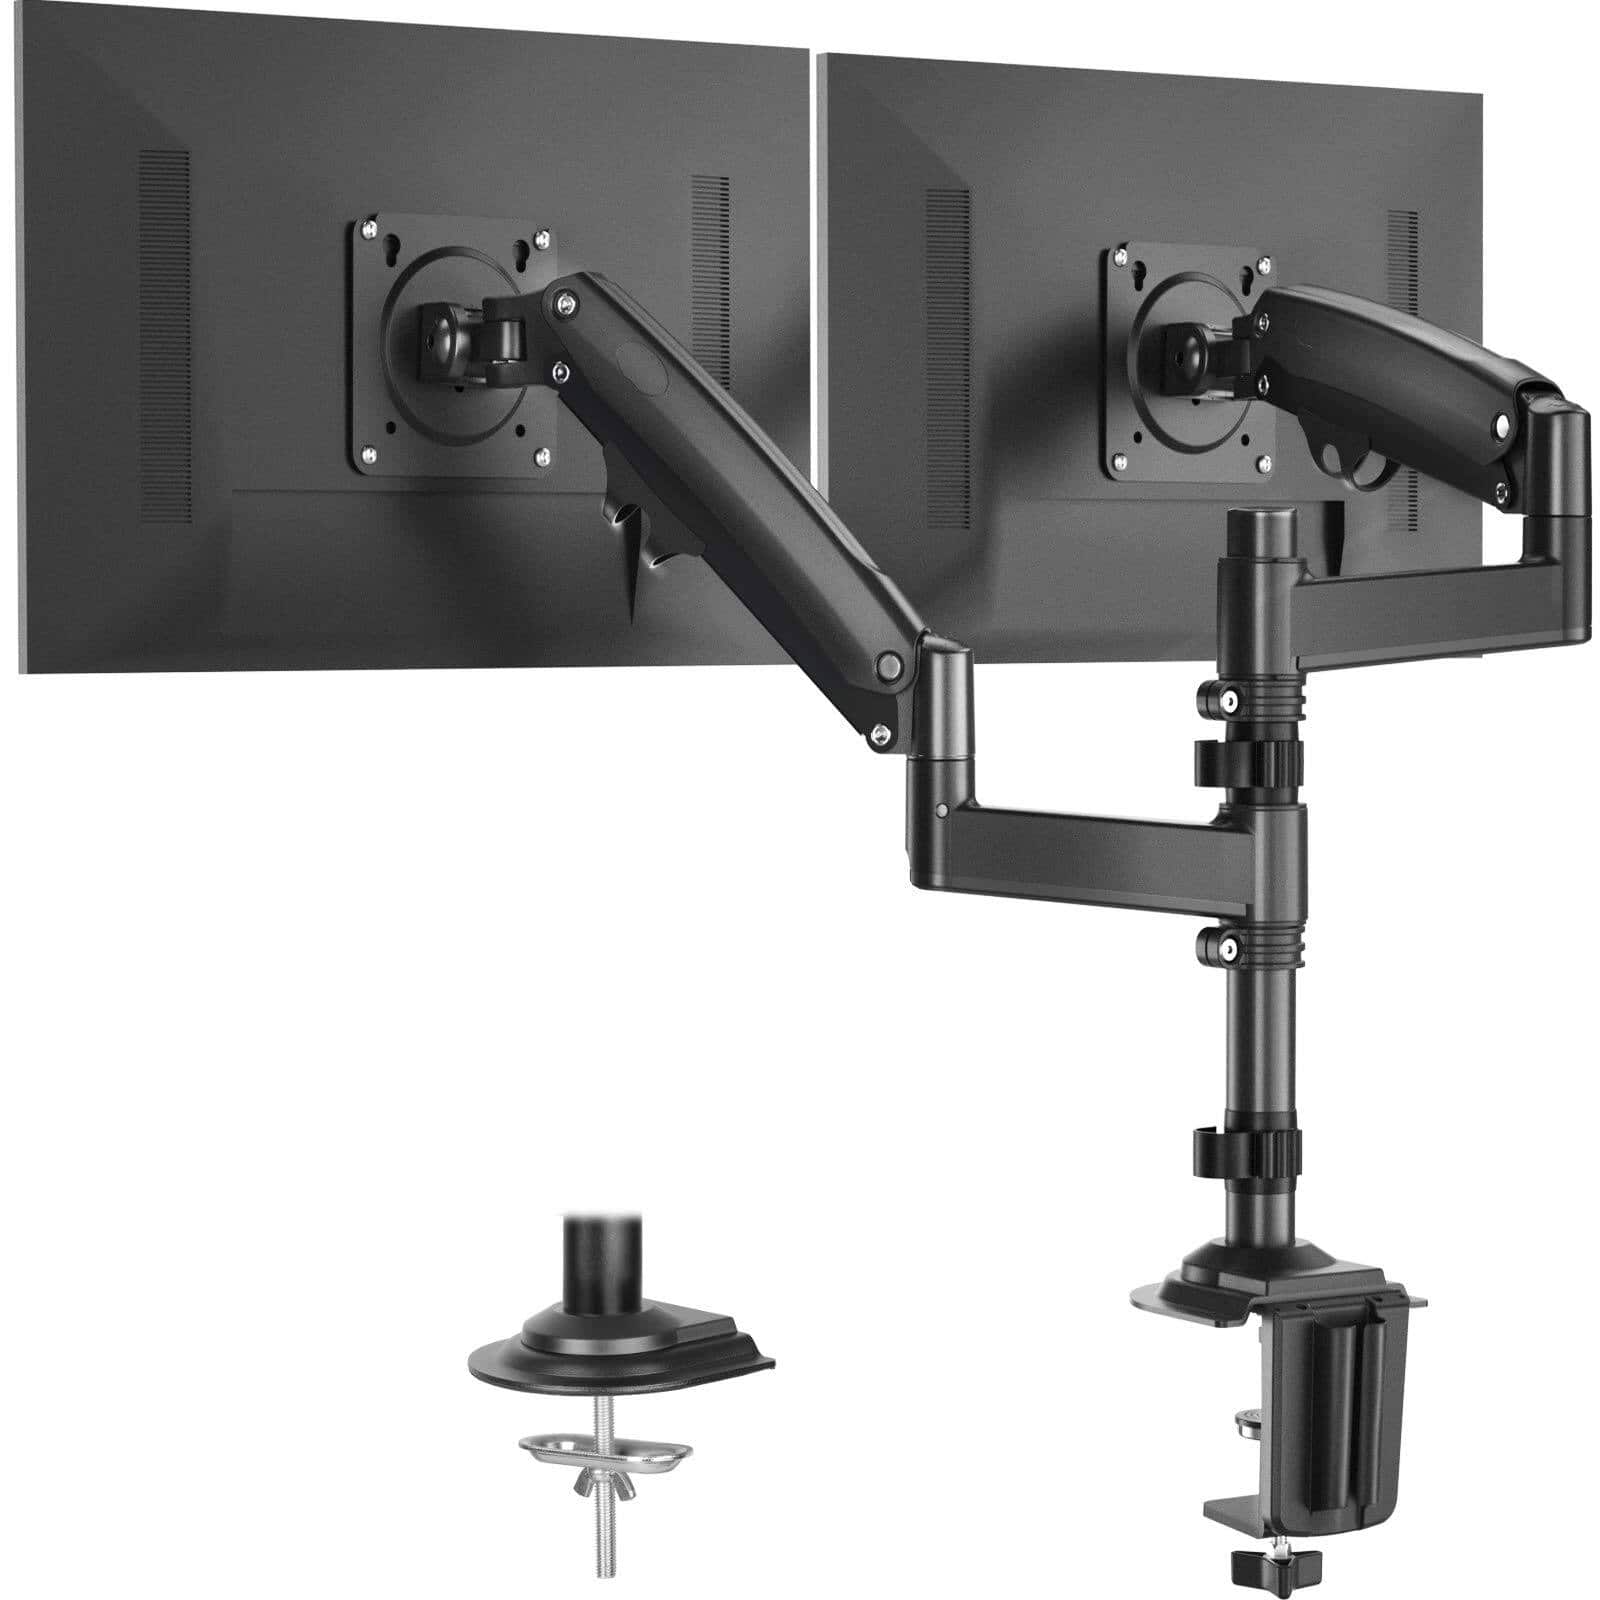 Huanuo Height Adjustable Dual Monitor Stand with Gas Spring Arm Fits for 22-32 inch $39.89